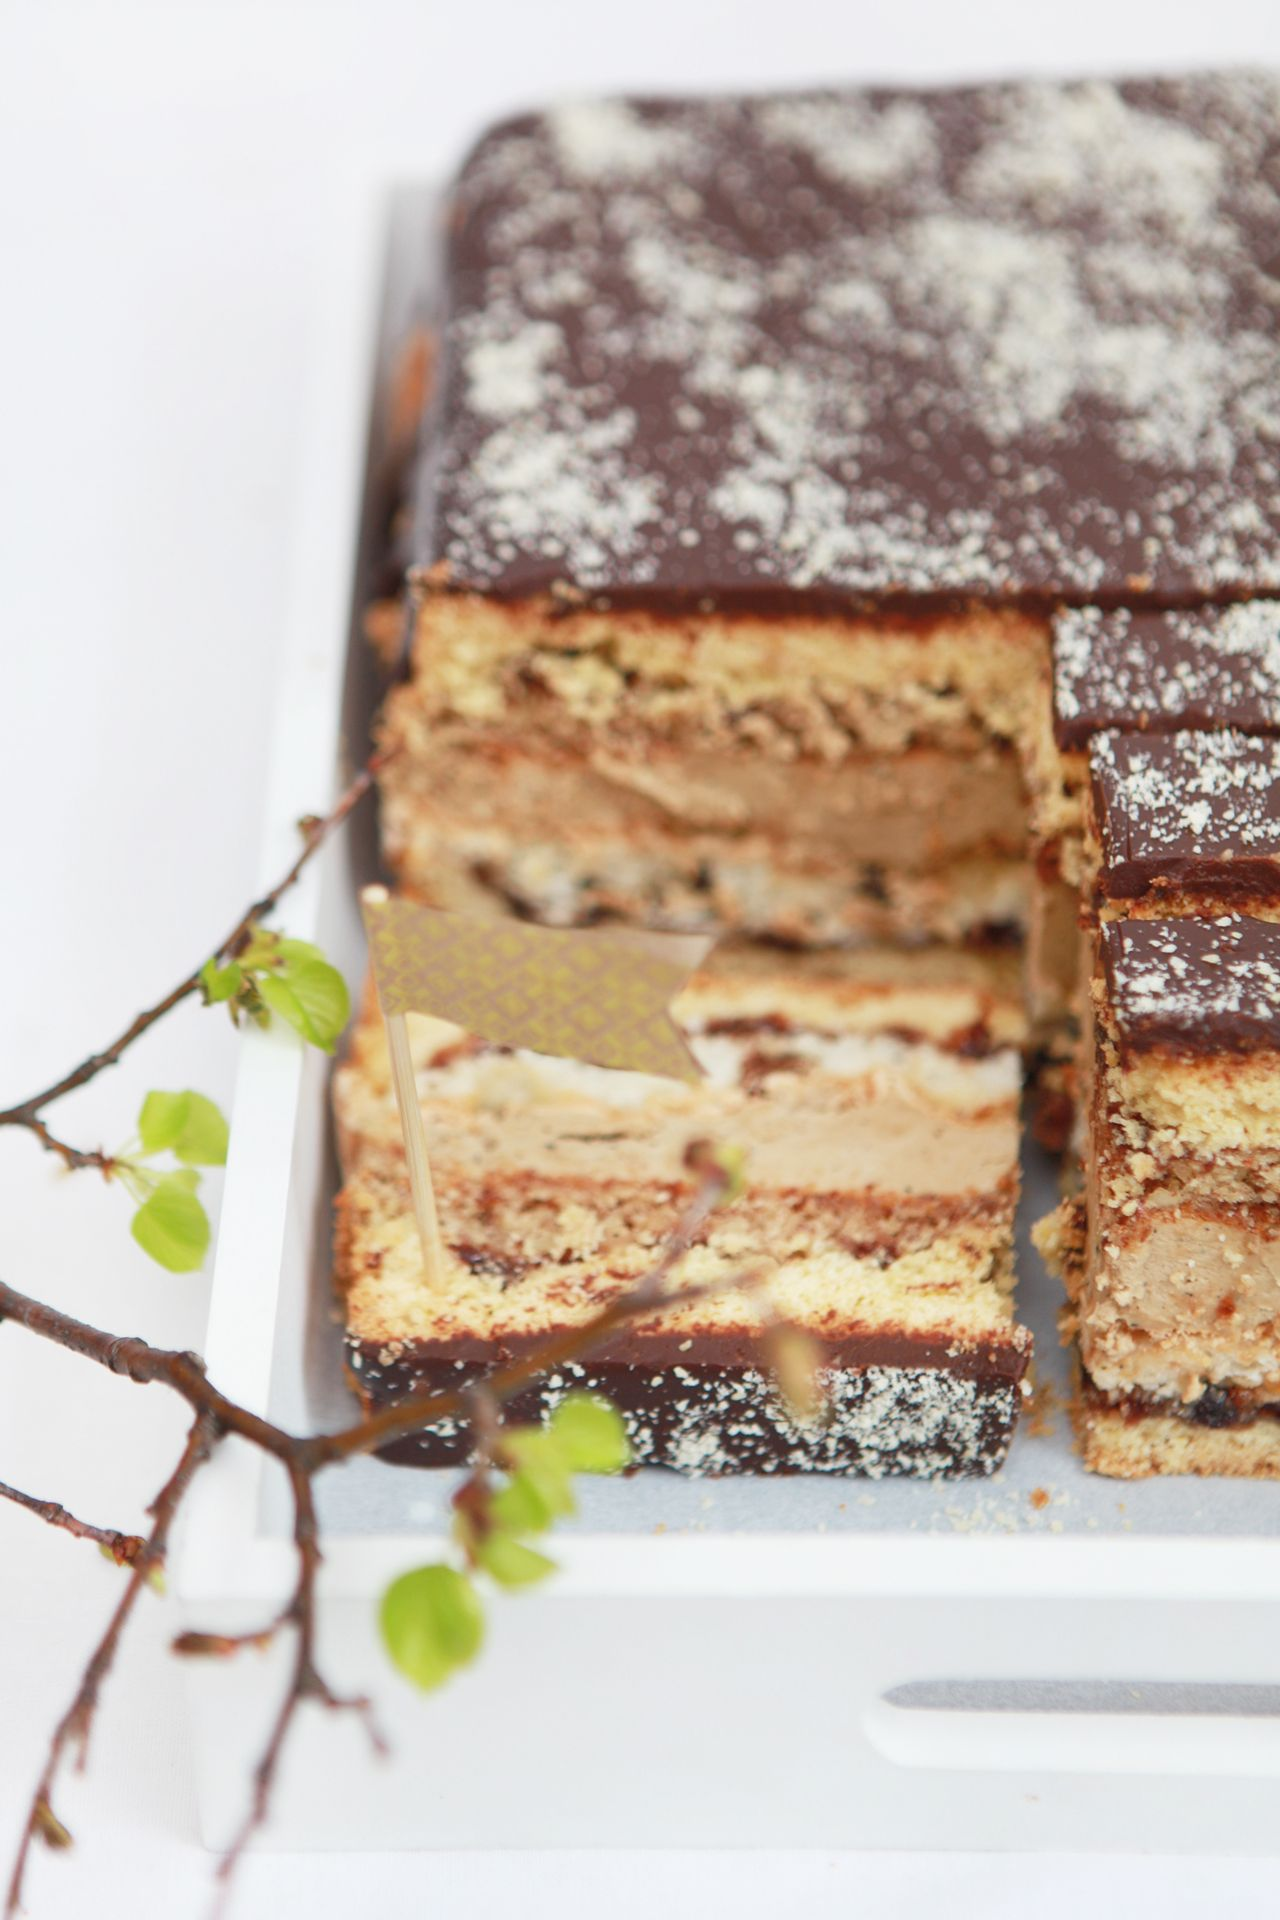 layered coffee cake with raspberry jam, dried fruit & nuts and chocolate ganache